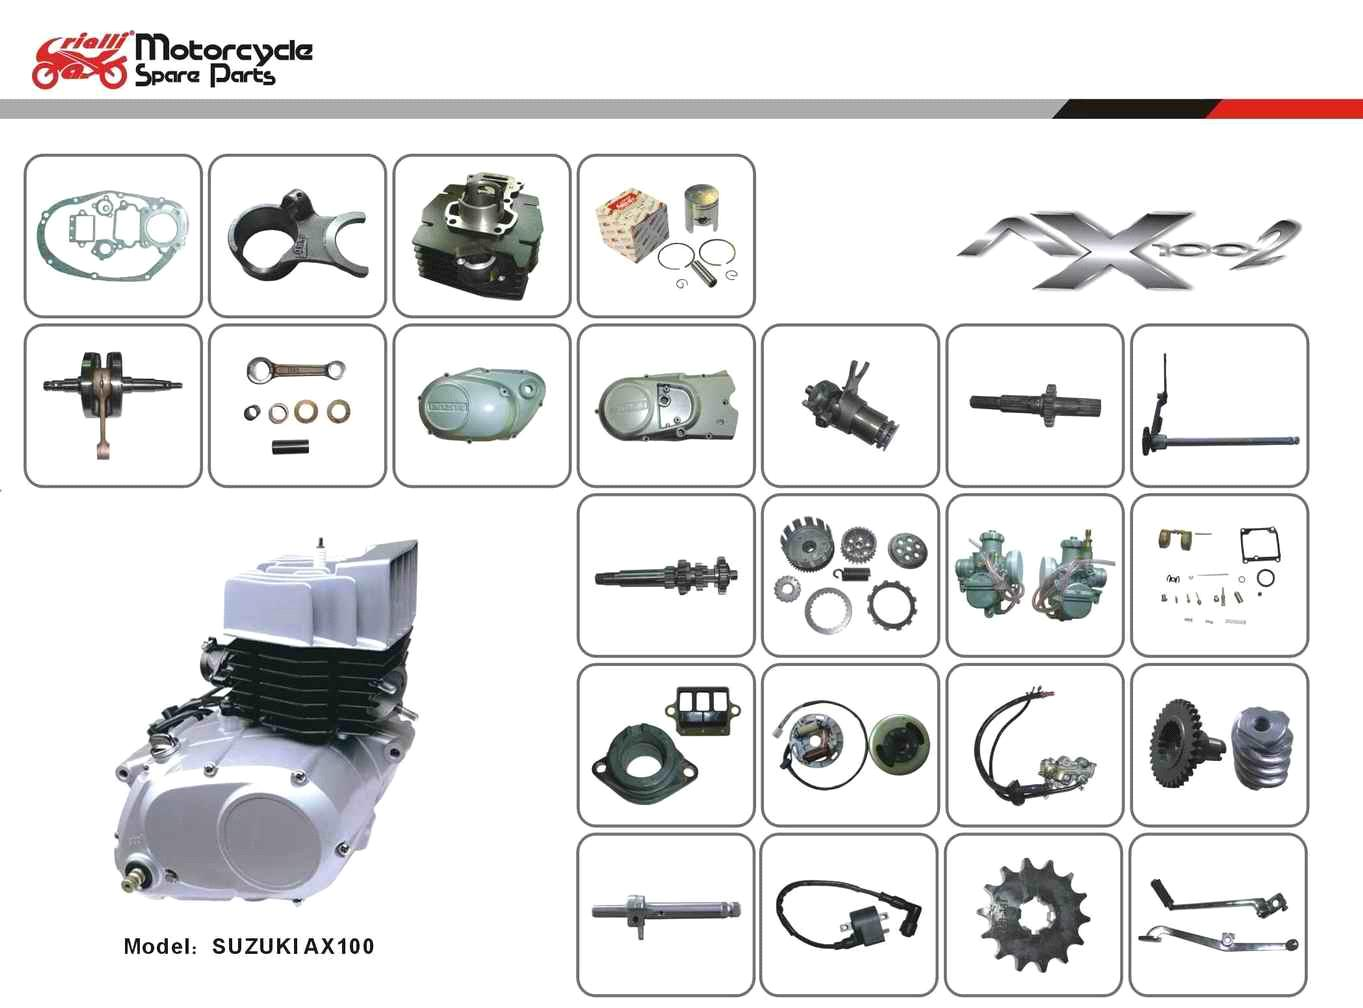 motorcycle suzuki ax 100 engine from china manufacturer. Black Bedroom Furniture Sets. Home Design Ideas